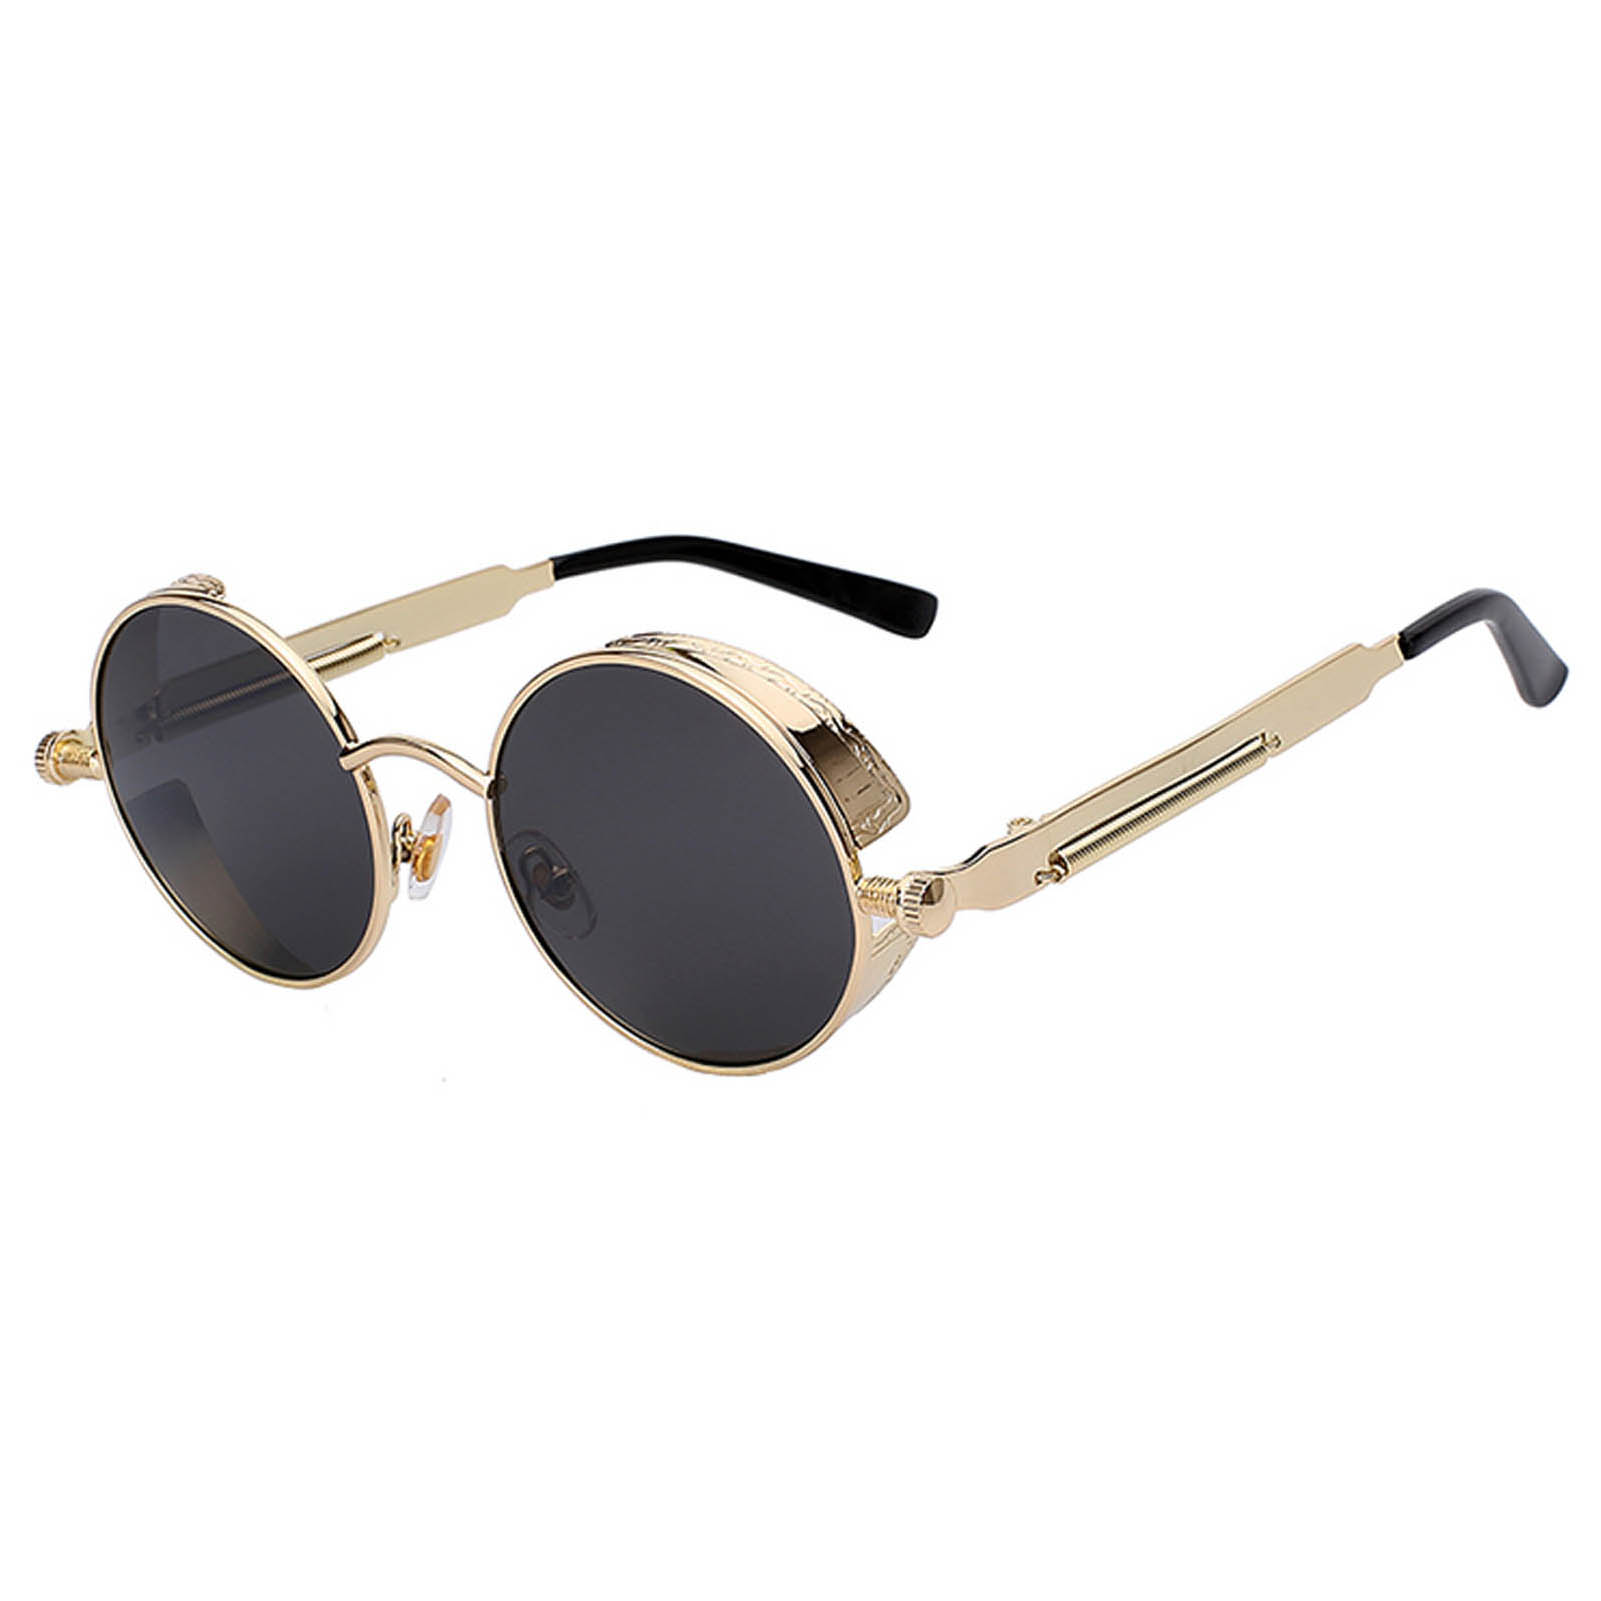 060 Steampunk C1 Gothic Sunglasses Metal Round Circle Gold Frame Black Lens One Pair